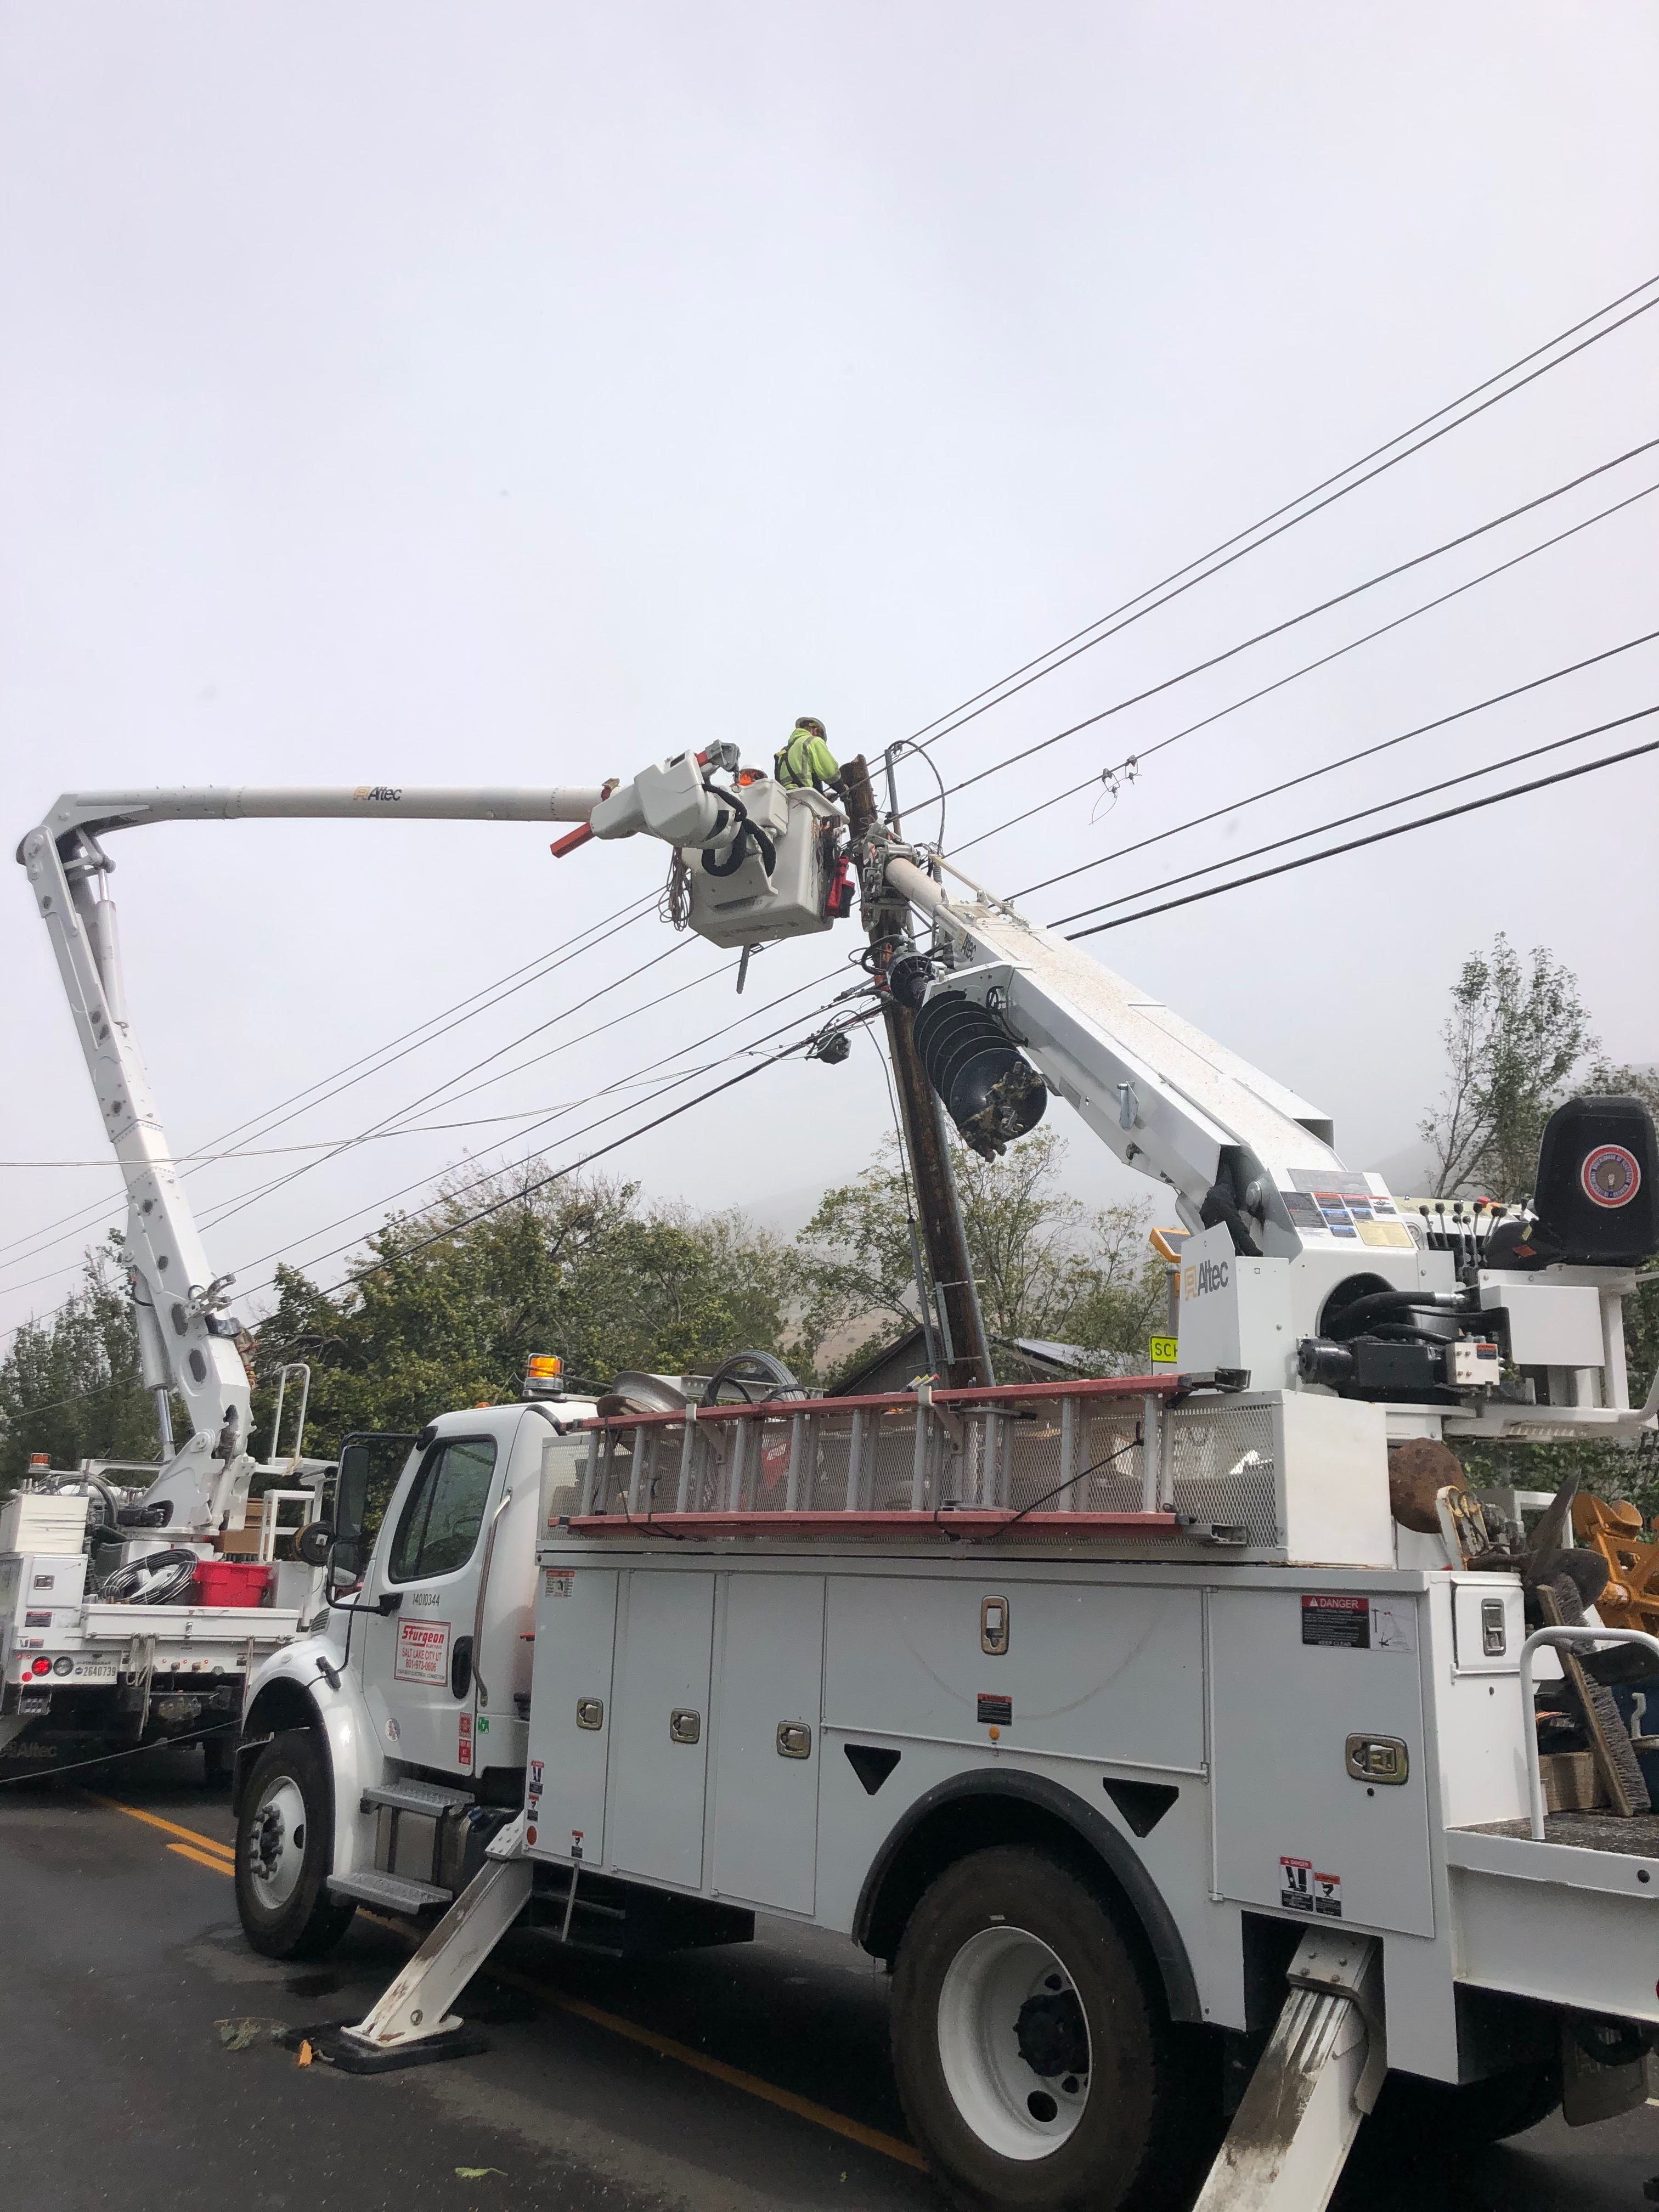 Efforts to restore power to the remaining 40,000 Utahns who lost electricity during a historic windstorm on Tuesday will continue through the weekend. (Photo: Rocky Mountain Power)<p></p>